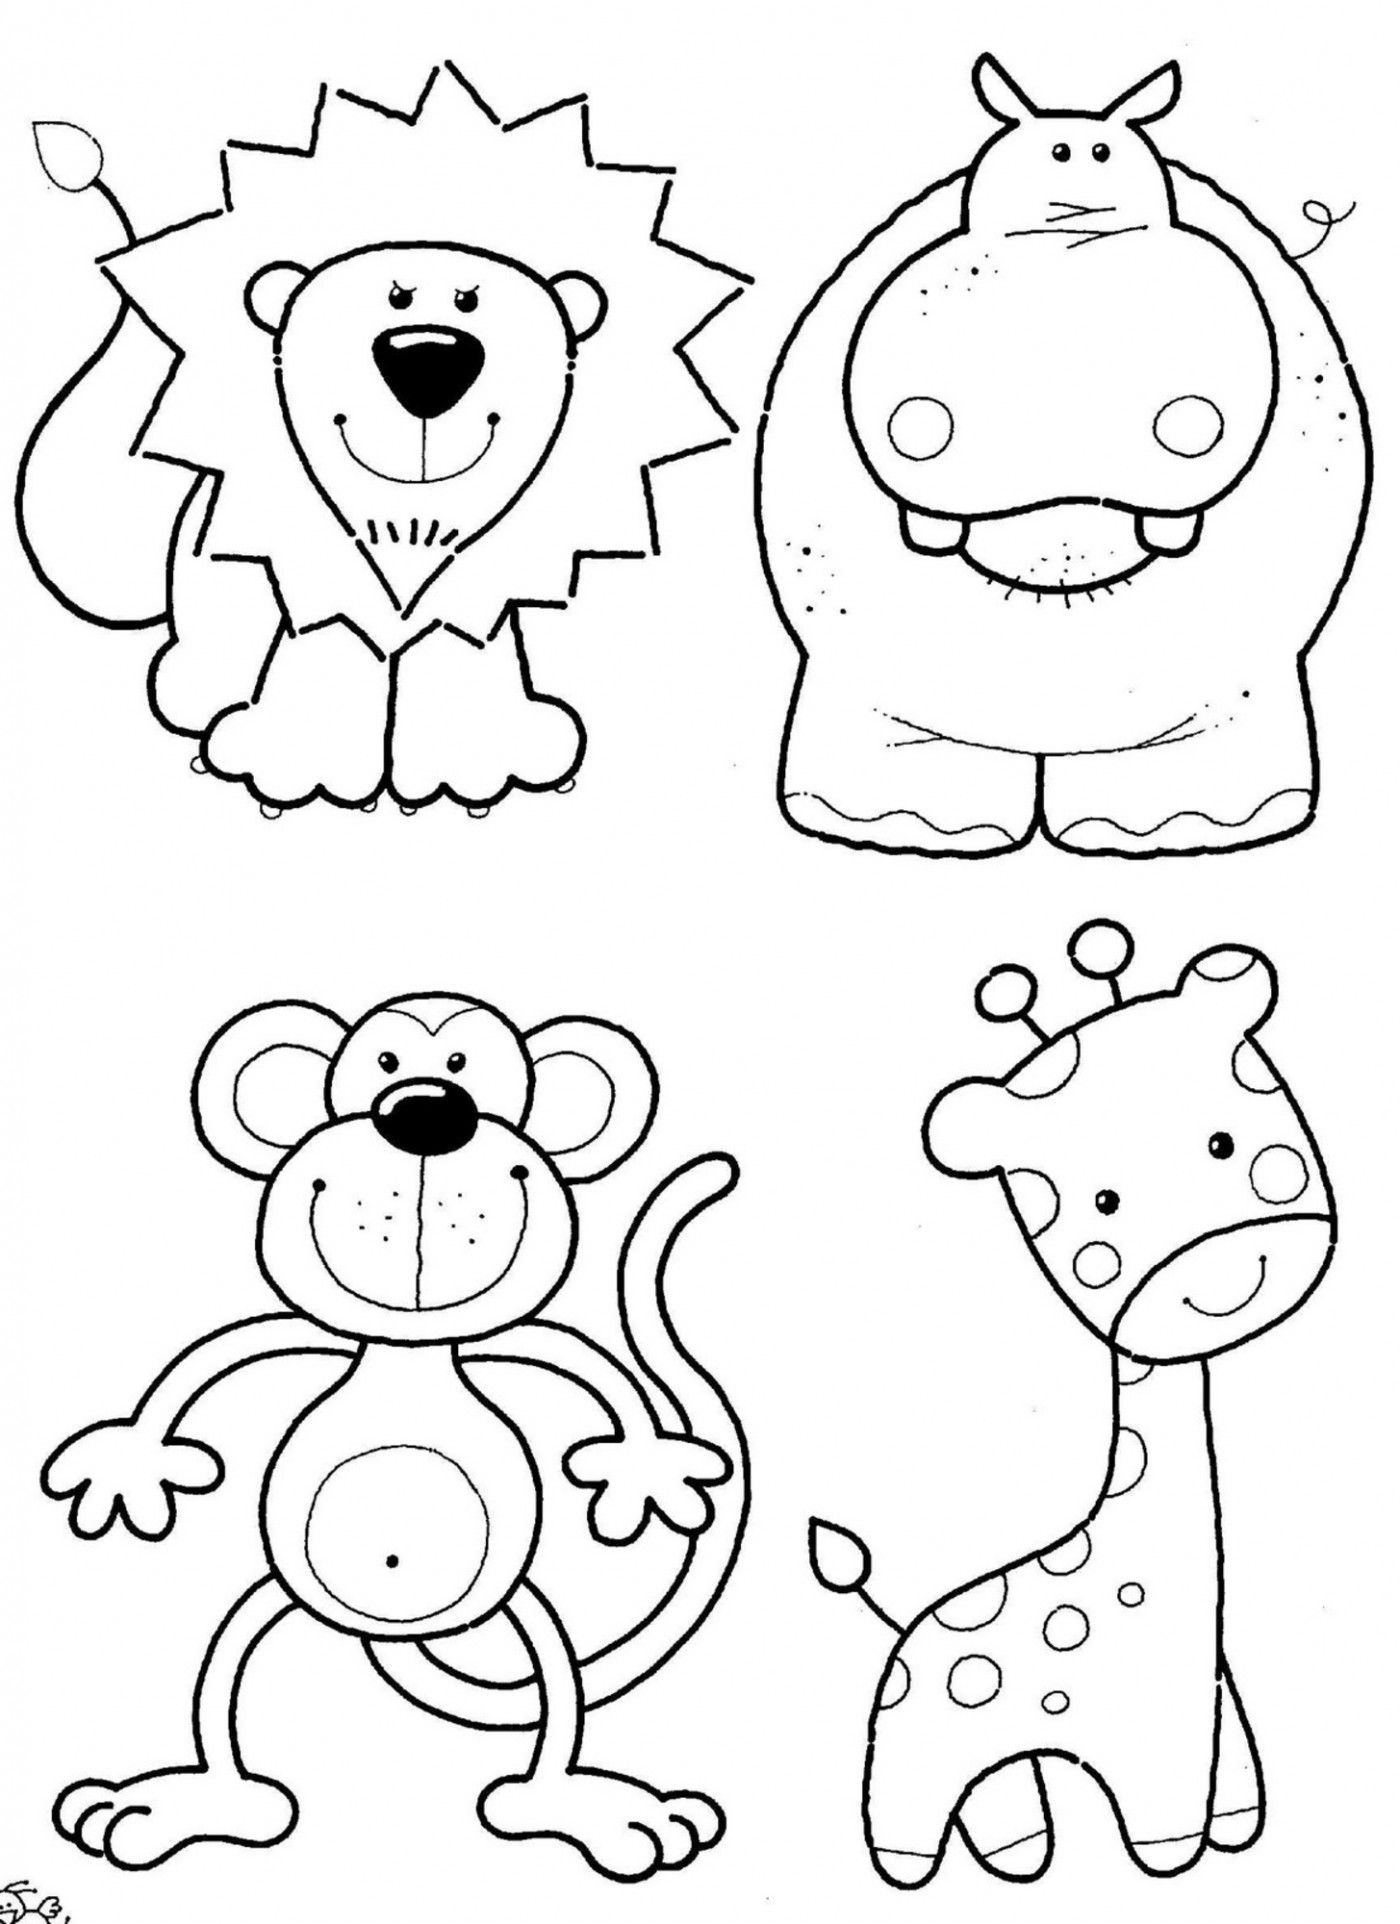 animal coloring pages 14 zoo animal coloring pages. Black Bedroom Furniture Sets. Home Design Ideas